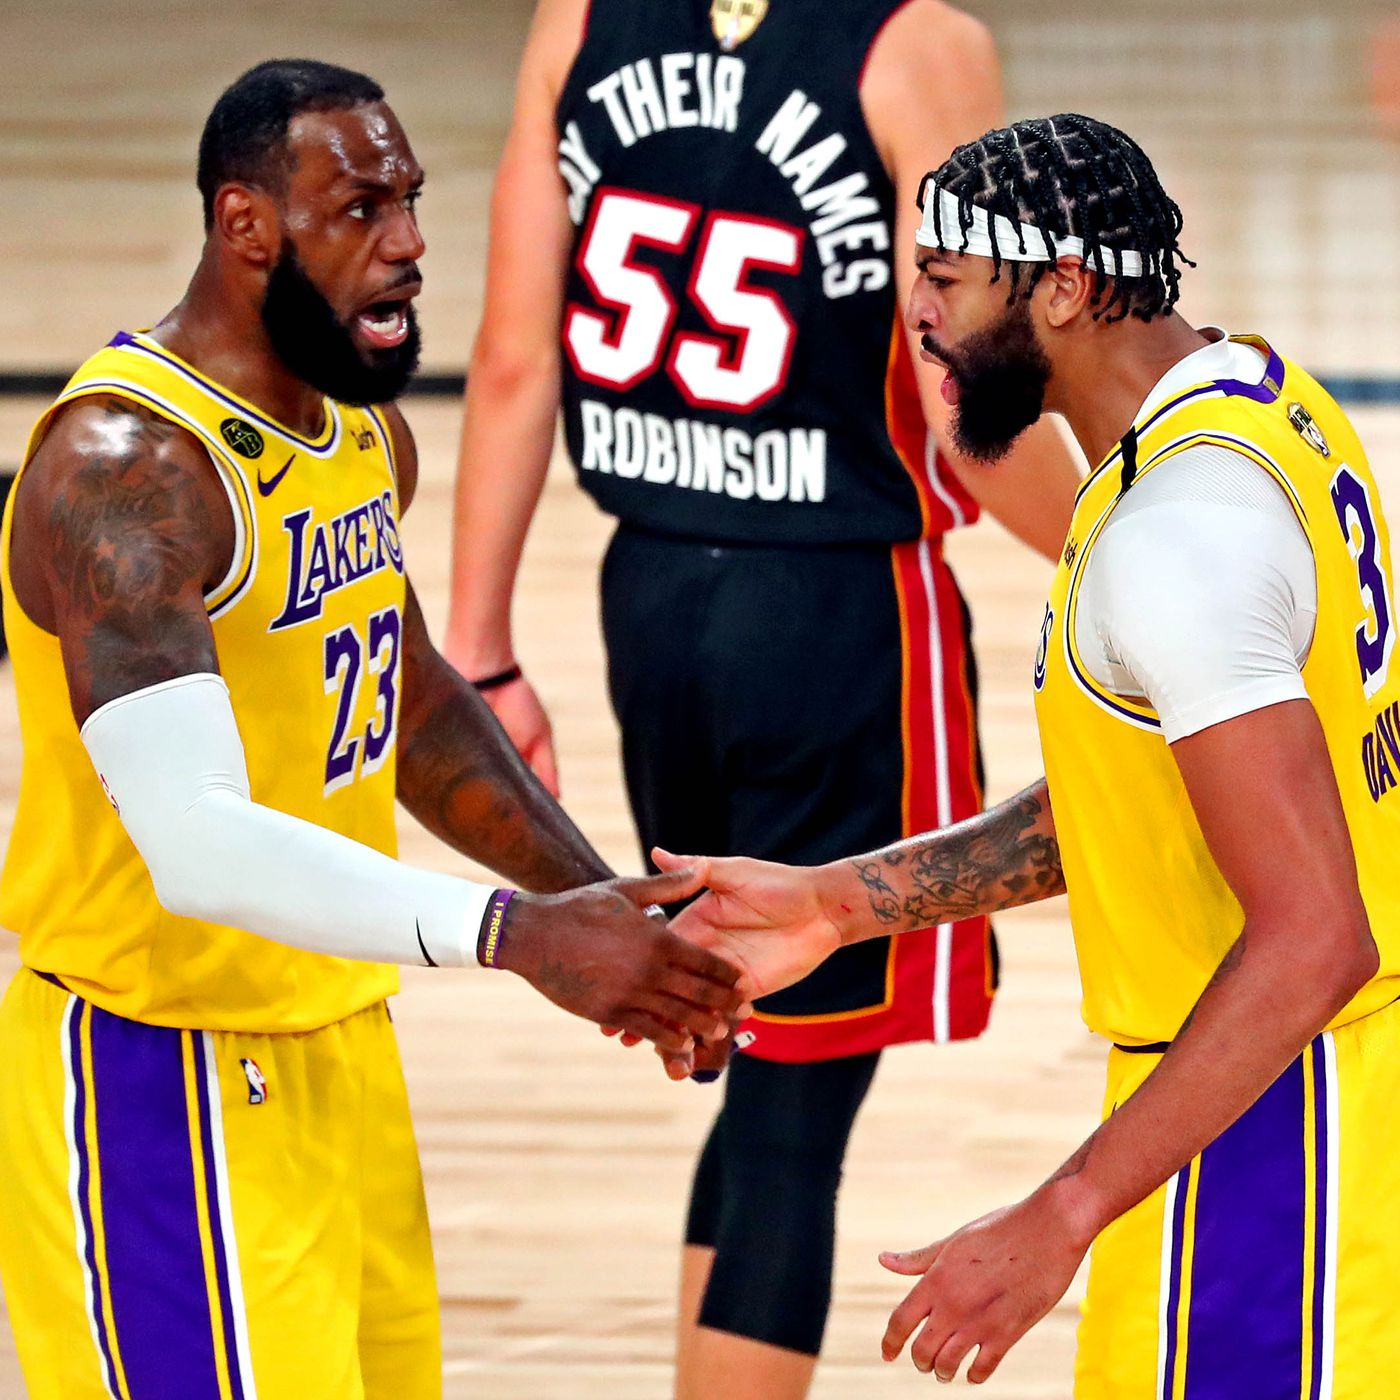 Lakers Vs Heat Game 1 Results Anthony Davis Lebron Dominate In 116 98 Win To Open Nba Finals Draftkings Nation